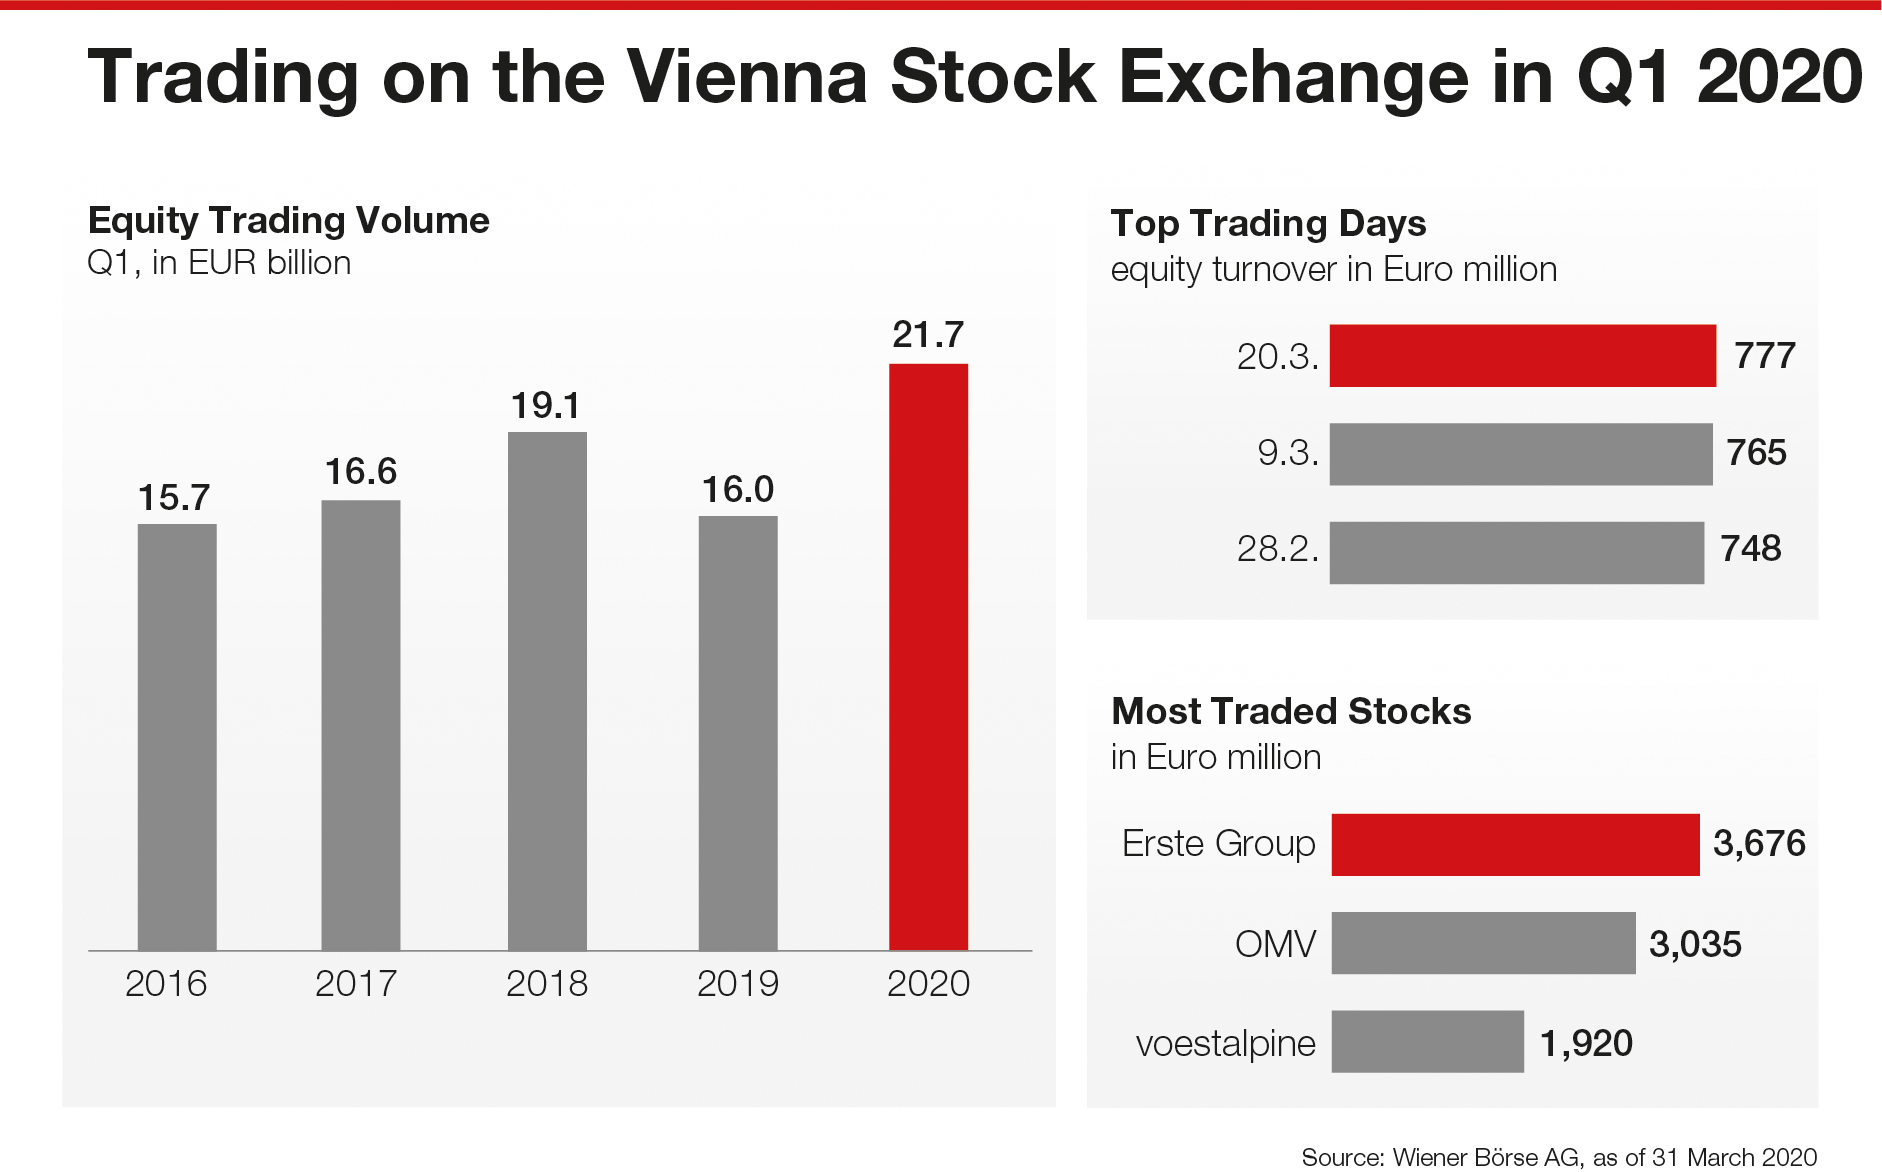 Trading on the Vienna Stock exchange year Q1 2020